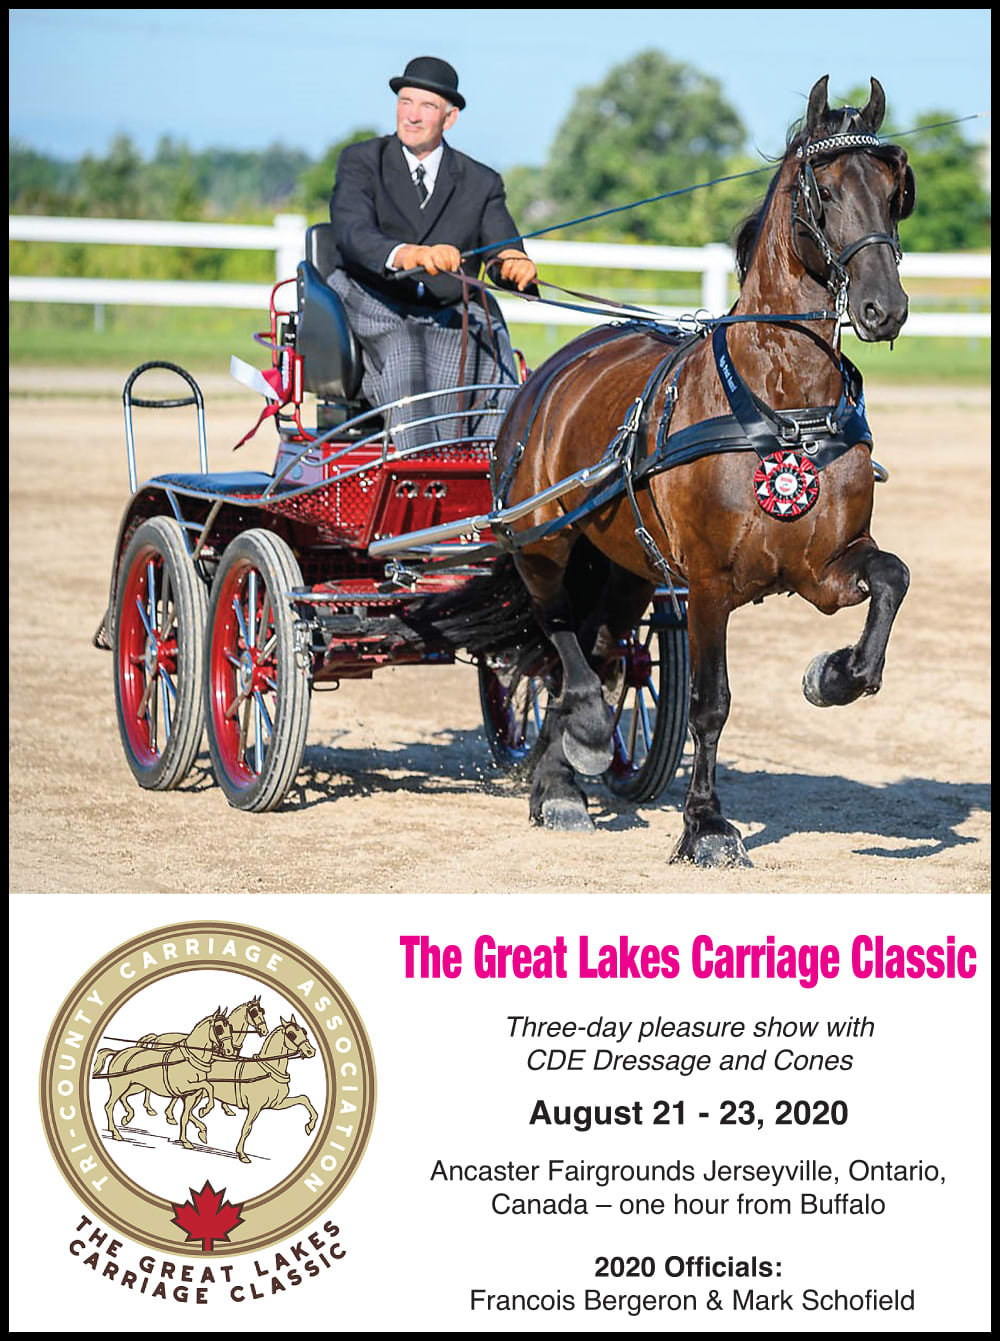 Tri-County Carriage Great Lakes Classic